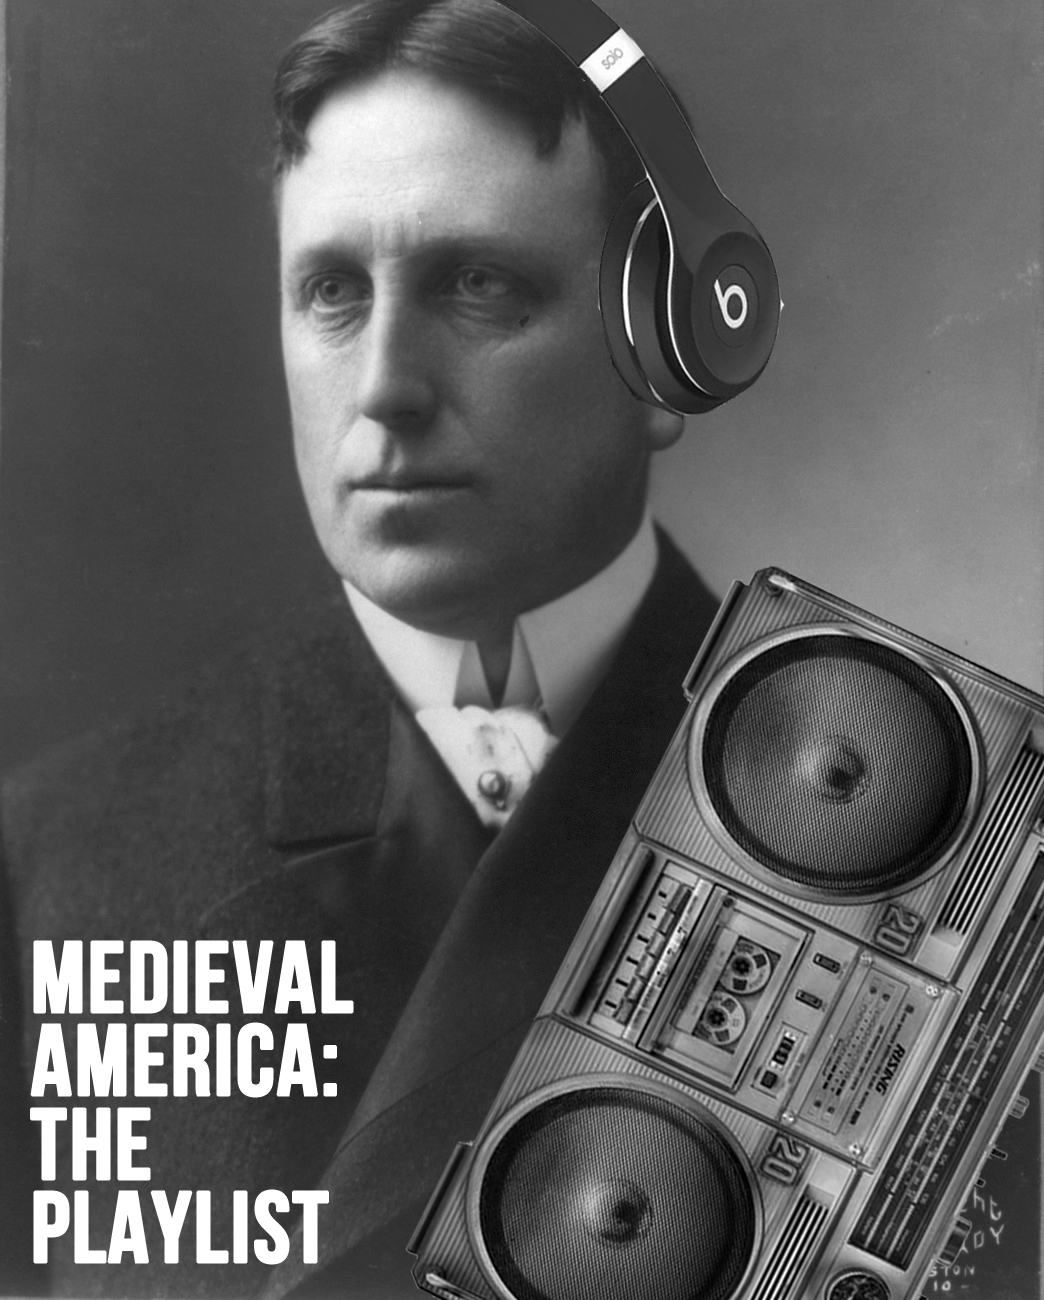 Fact: Hearst was an early investor in Beats™ by Dre.